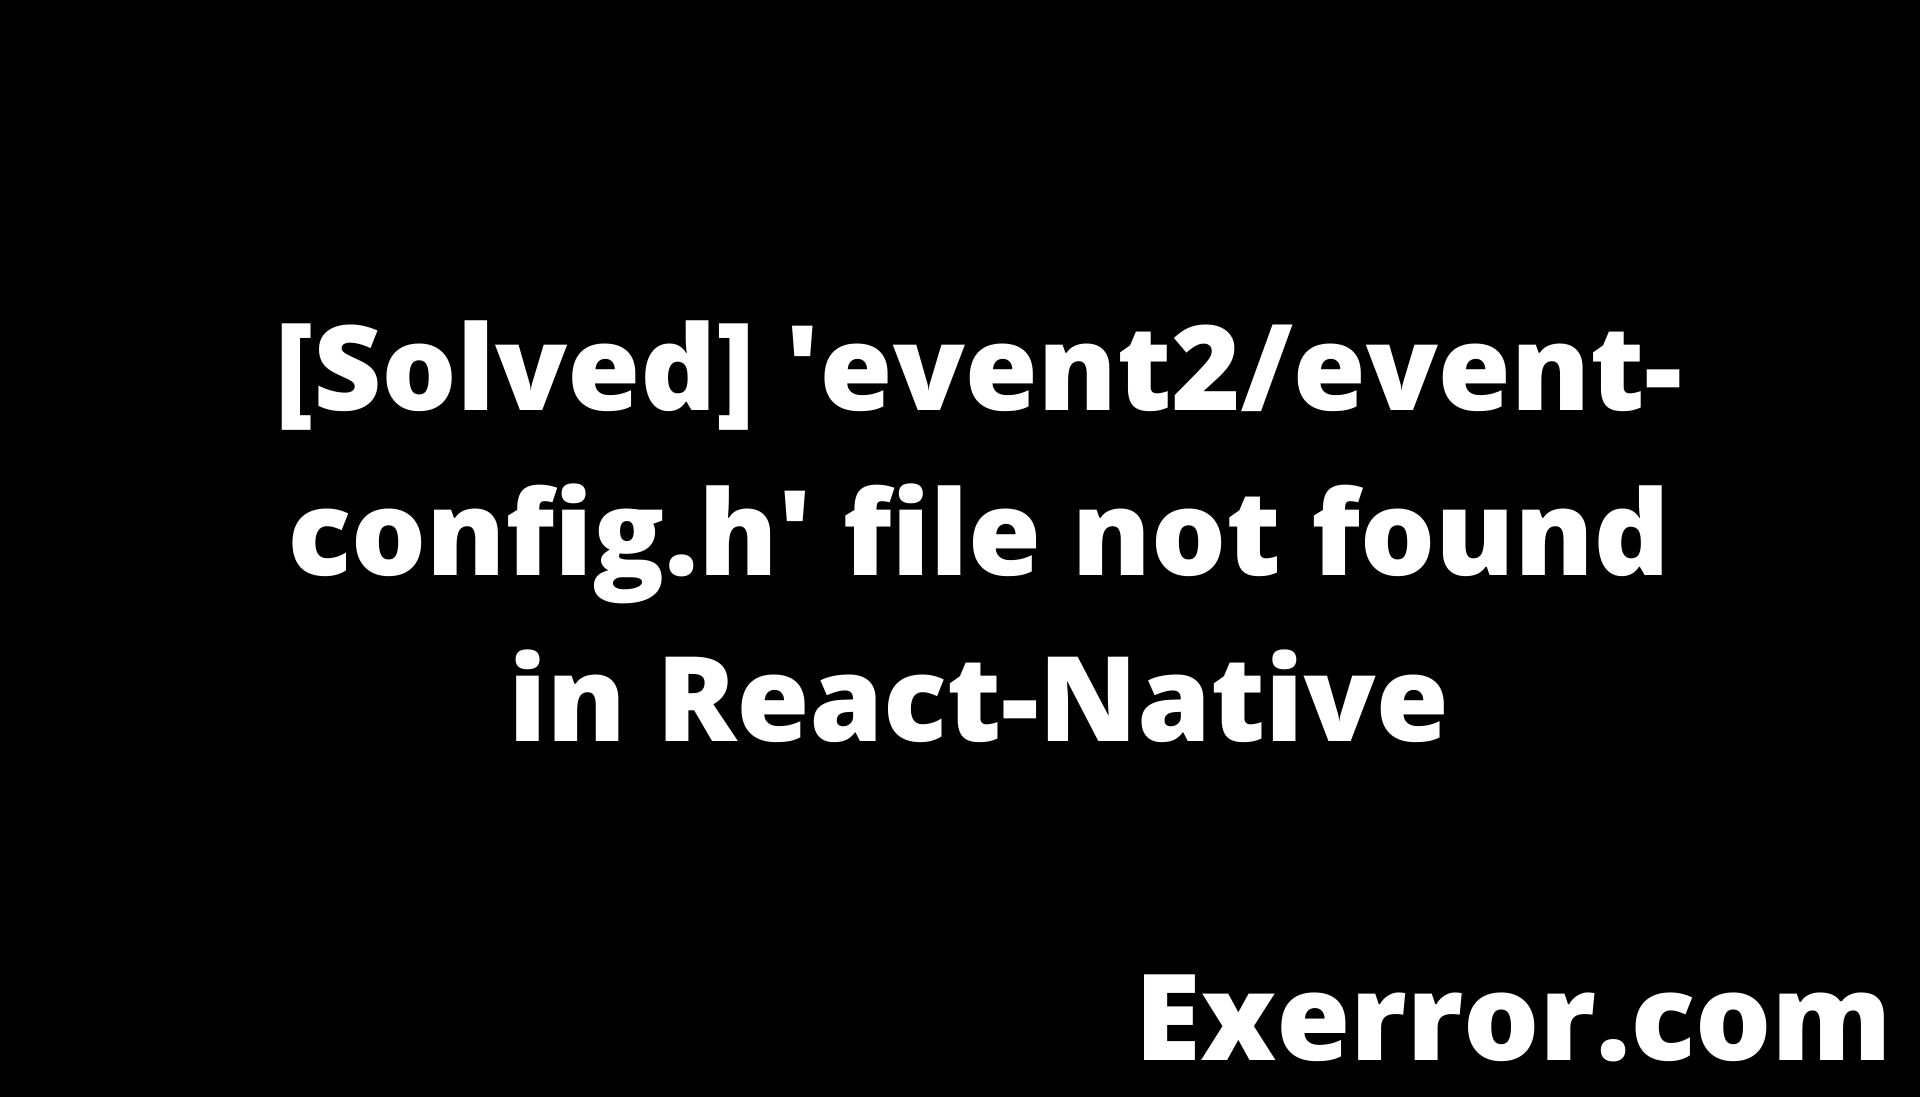 'event2/event-config.h' file not found in React-Native, 'event2/event-config.h' file not found, 'event2/event-config.h' file not found React-Native